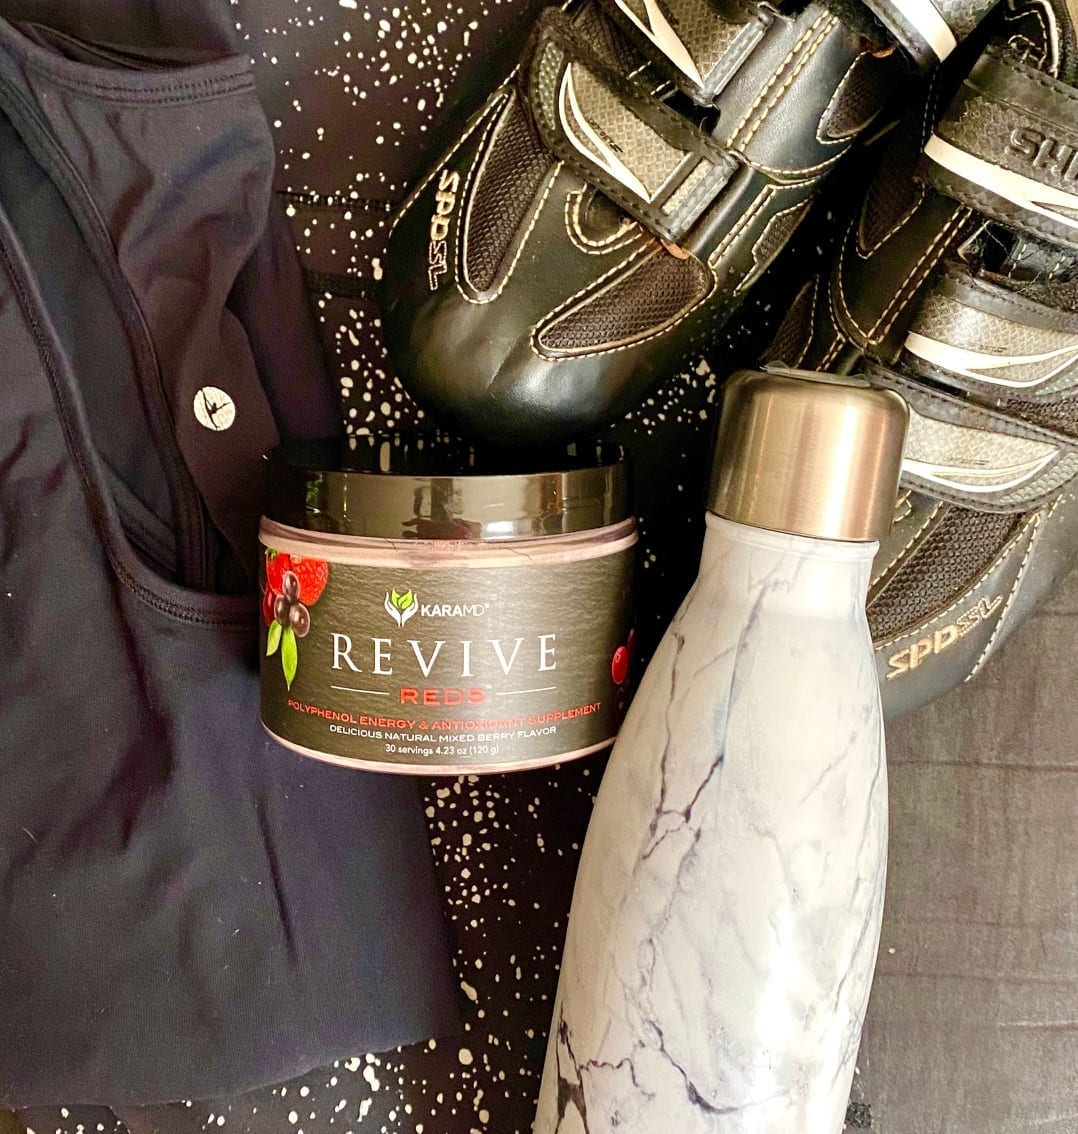 KaraMD Revive Reds withPolyphenols post workout essentials image